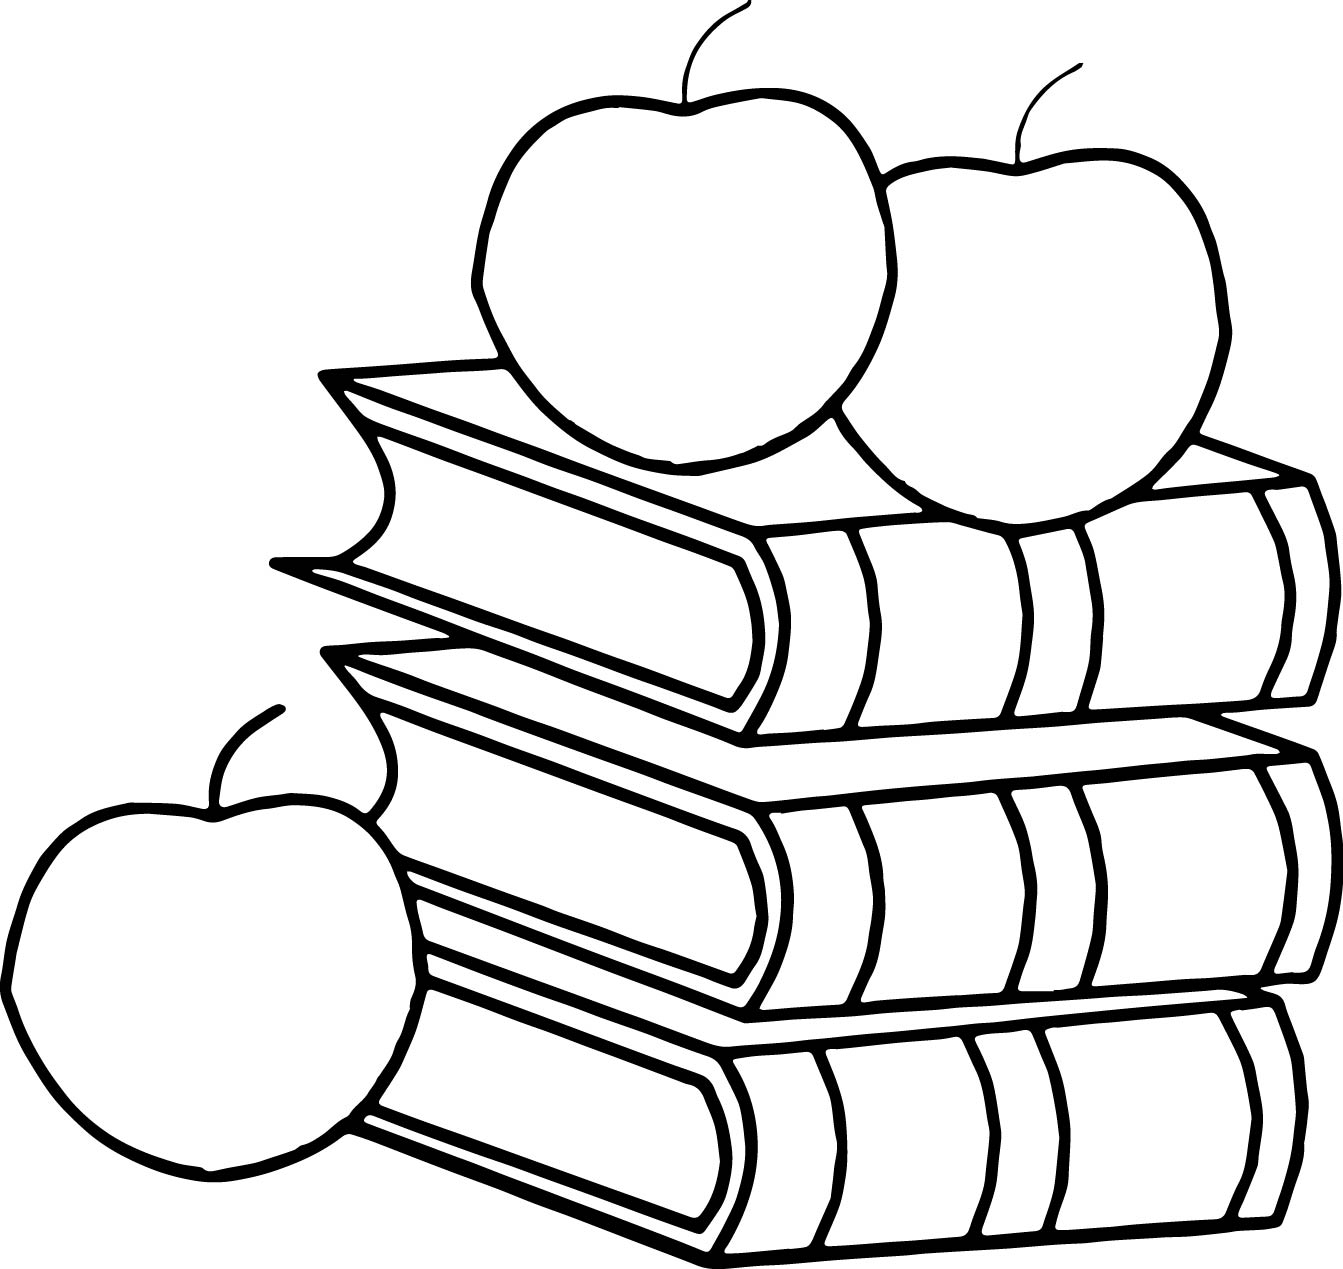 coloring for grade 3 3rd grade coloring pages free download on clipartmag coloring 3 for grade 1 1